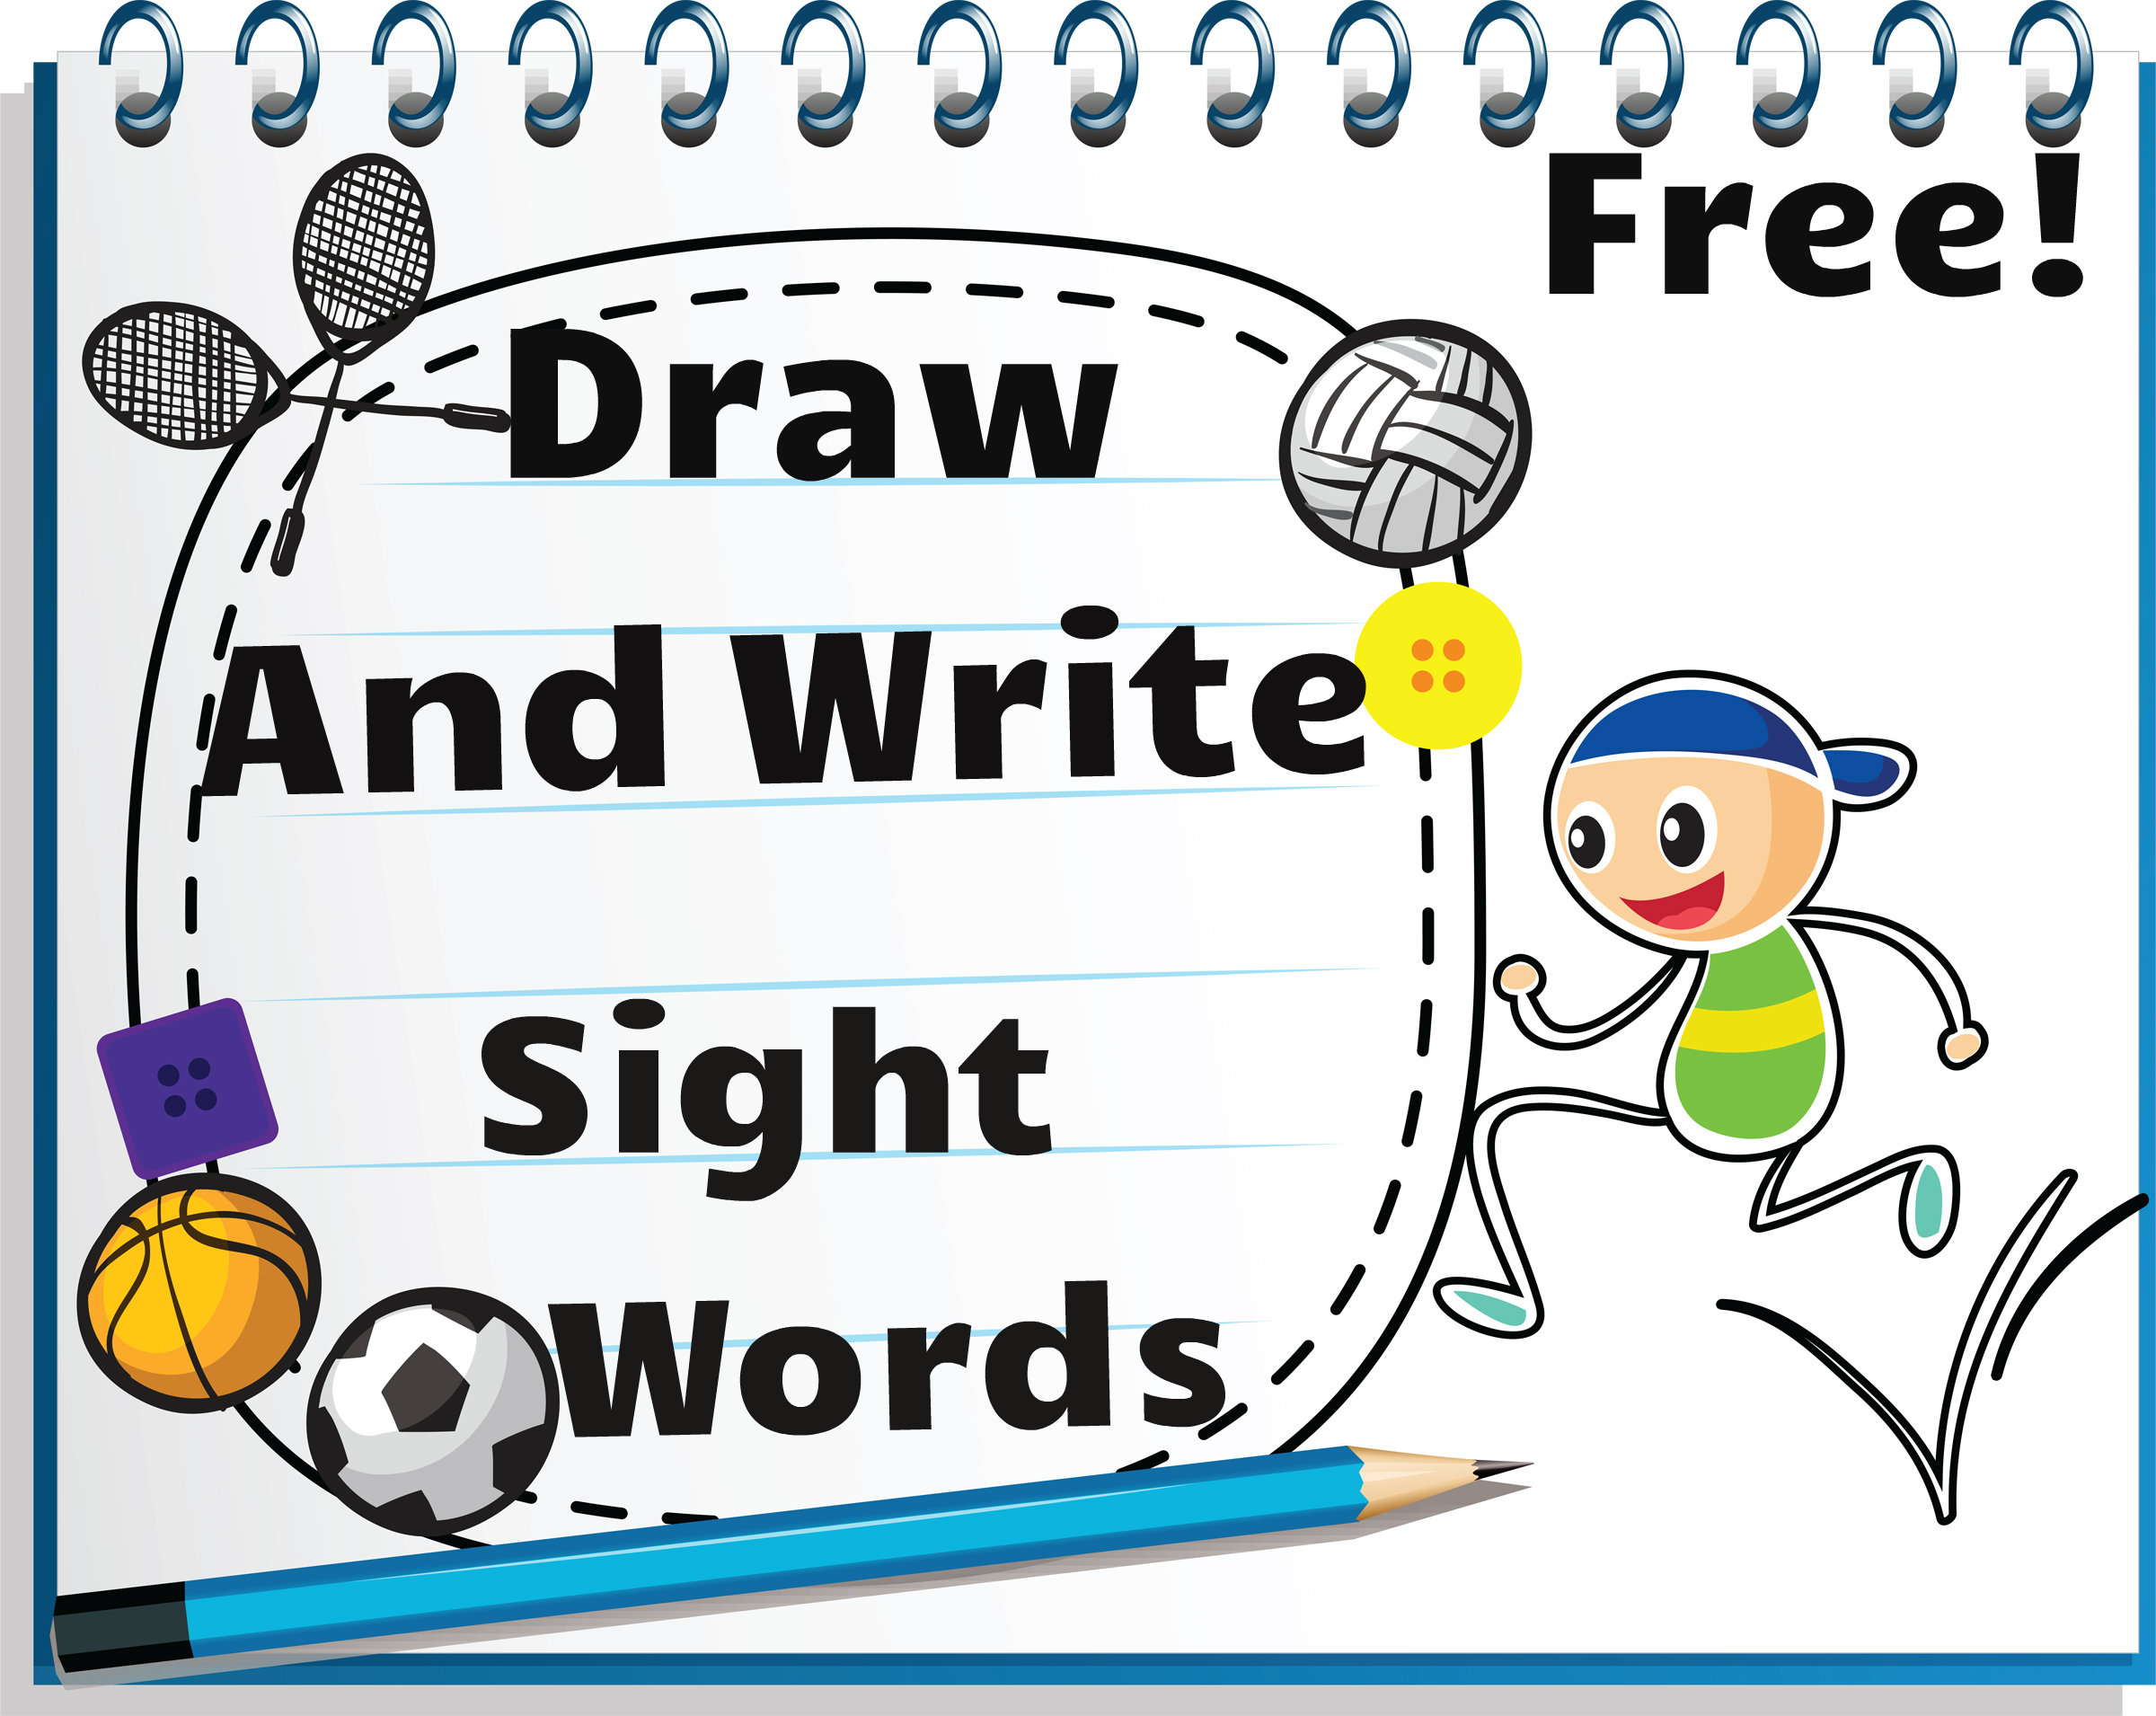 Draw And Write Sight Words Free Sight Word Activities